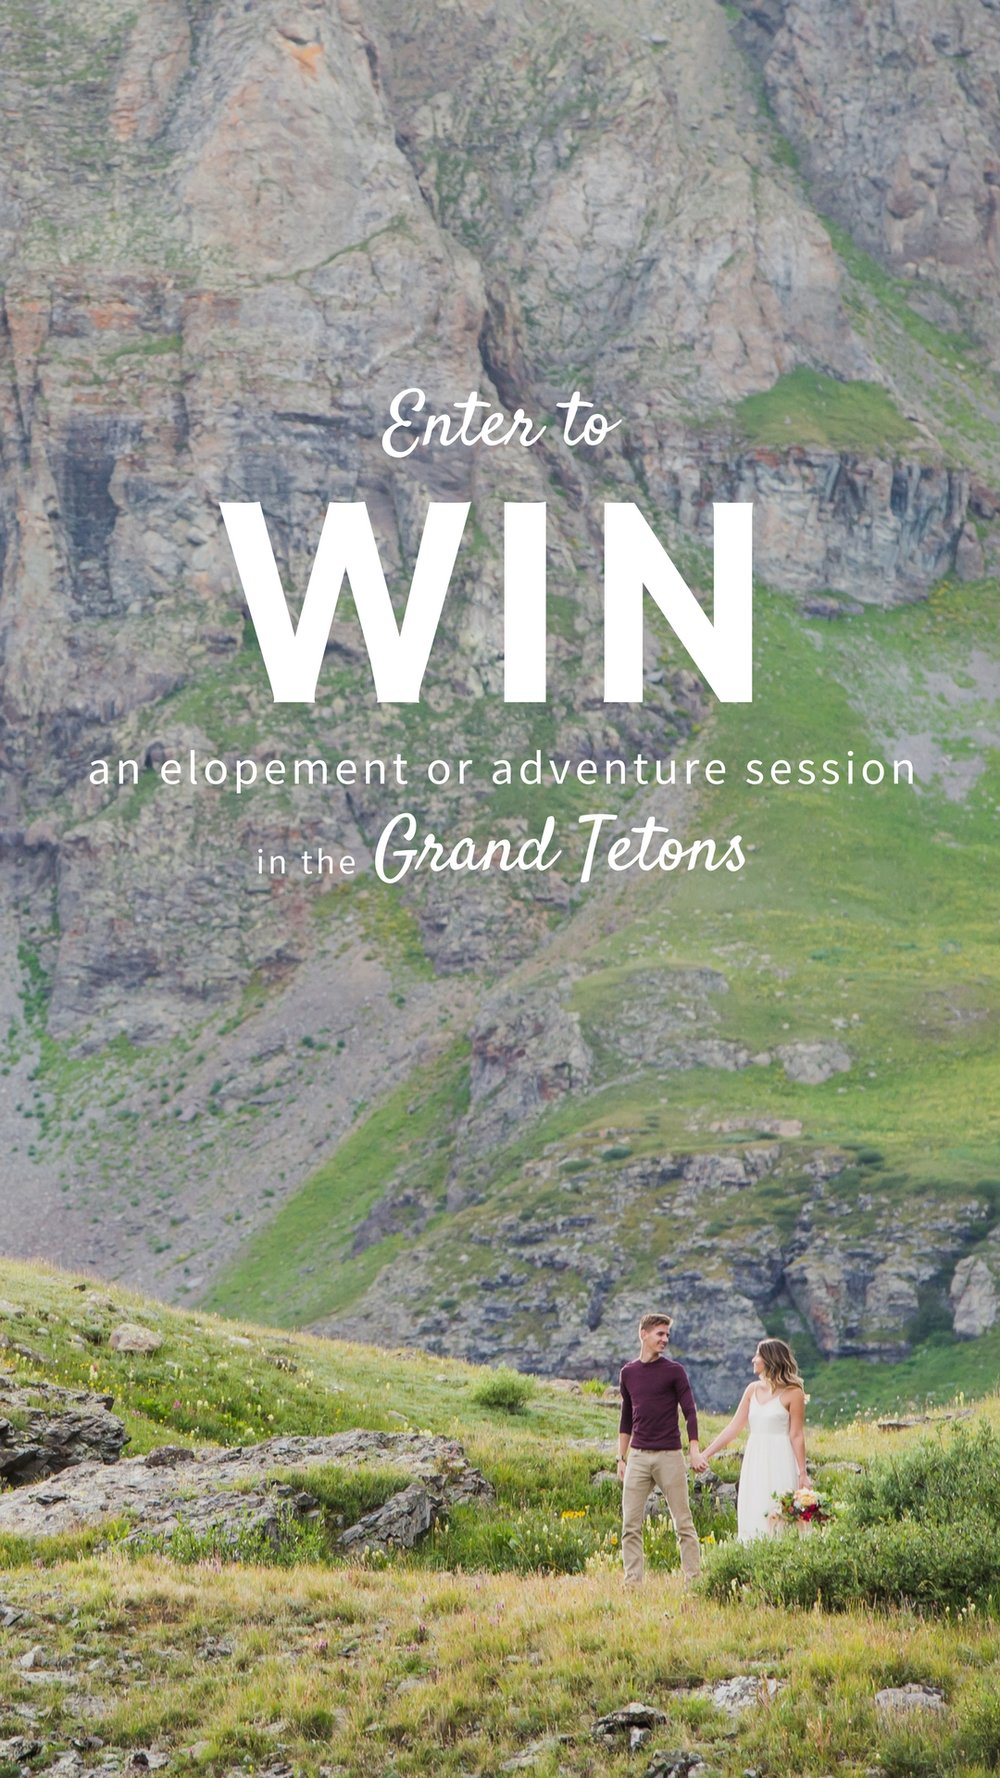 Win a free elopement photography package for Grand Tetons National Park!